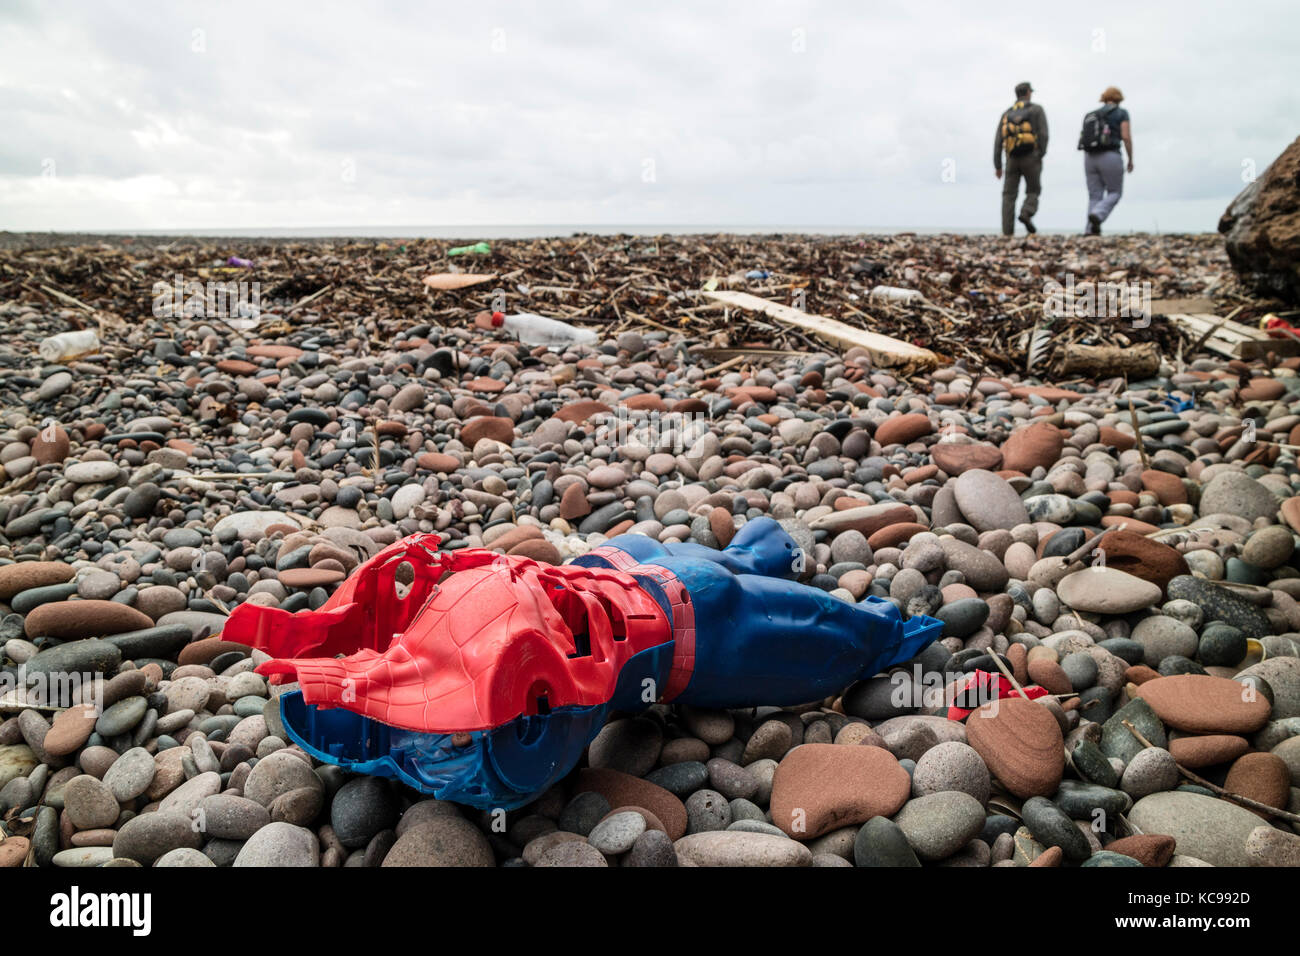 Plastic and other Debris Washed up on the Beach of Fleswick Bay Near St Bees, Cumbria, UK - Stock Image